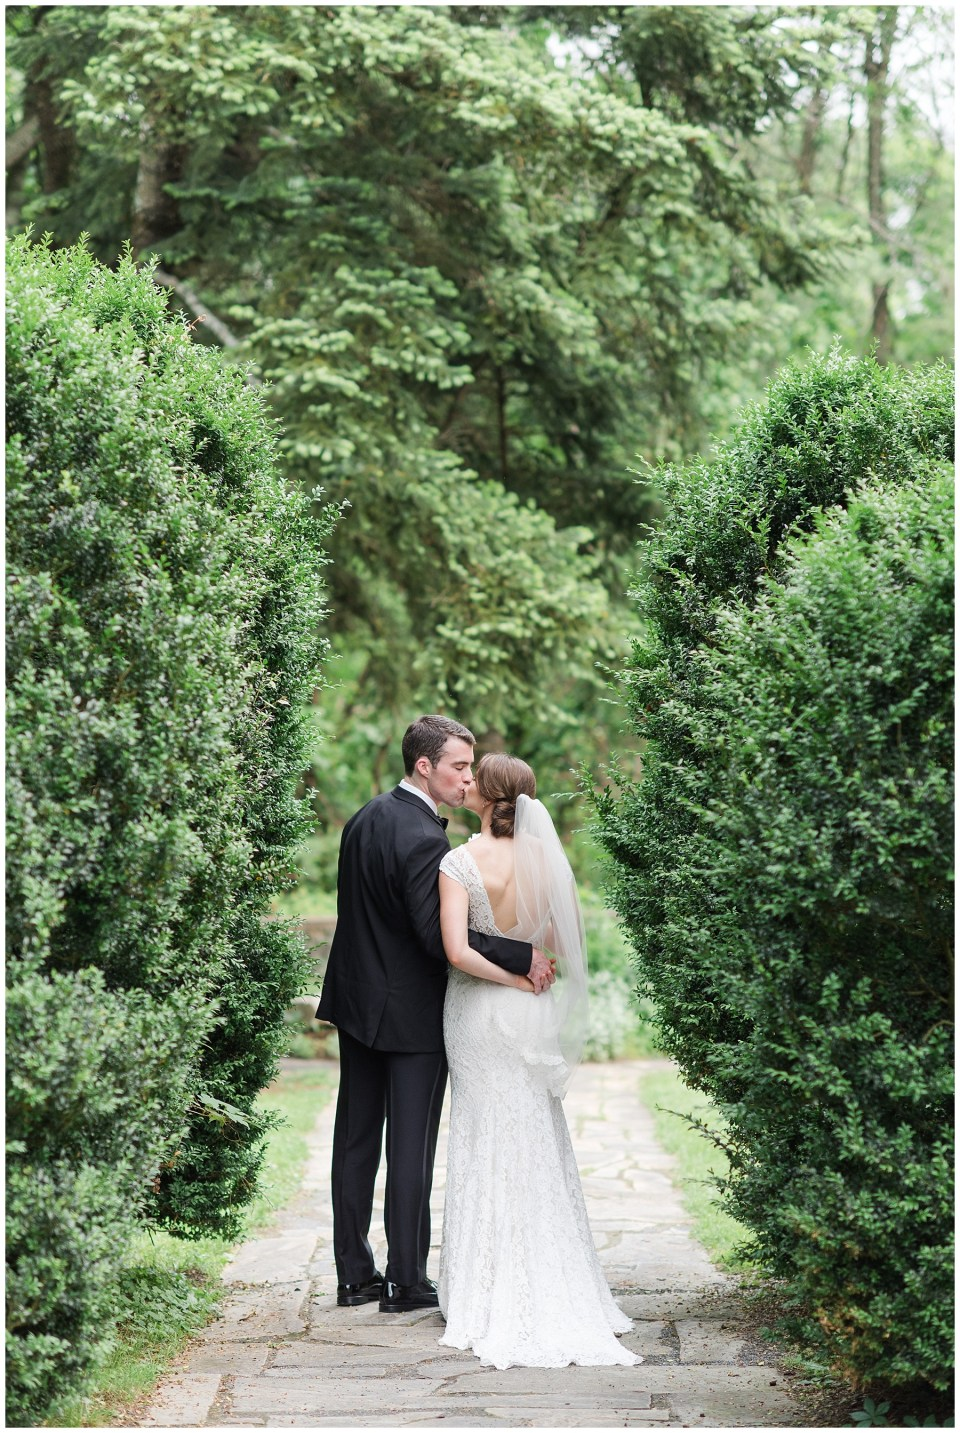 rust-manor-house-garden-romantic-wedding-photo